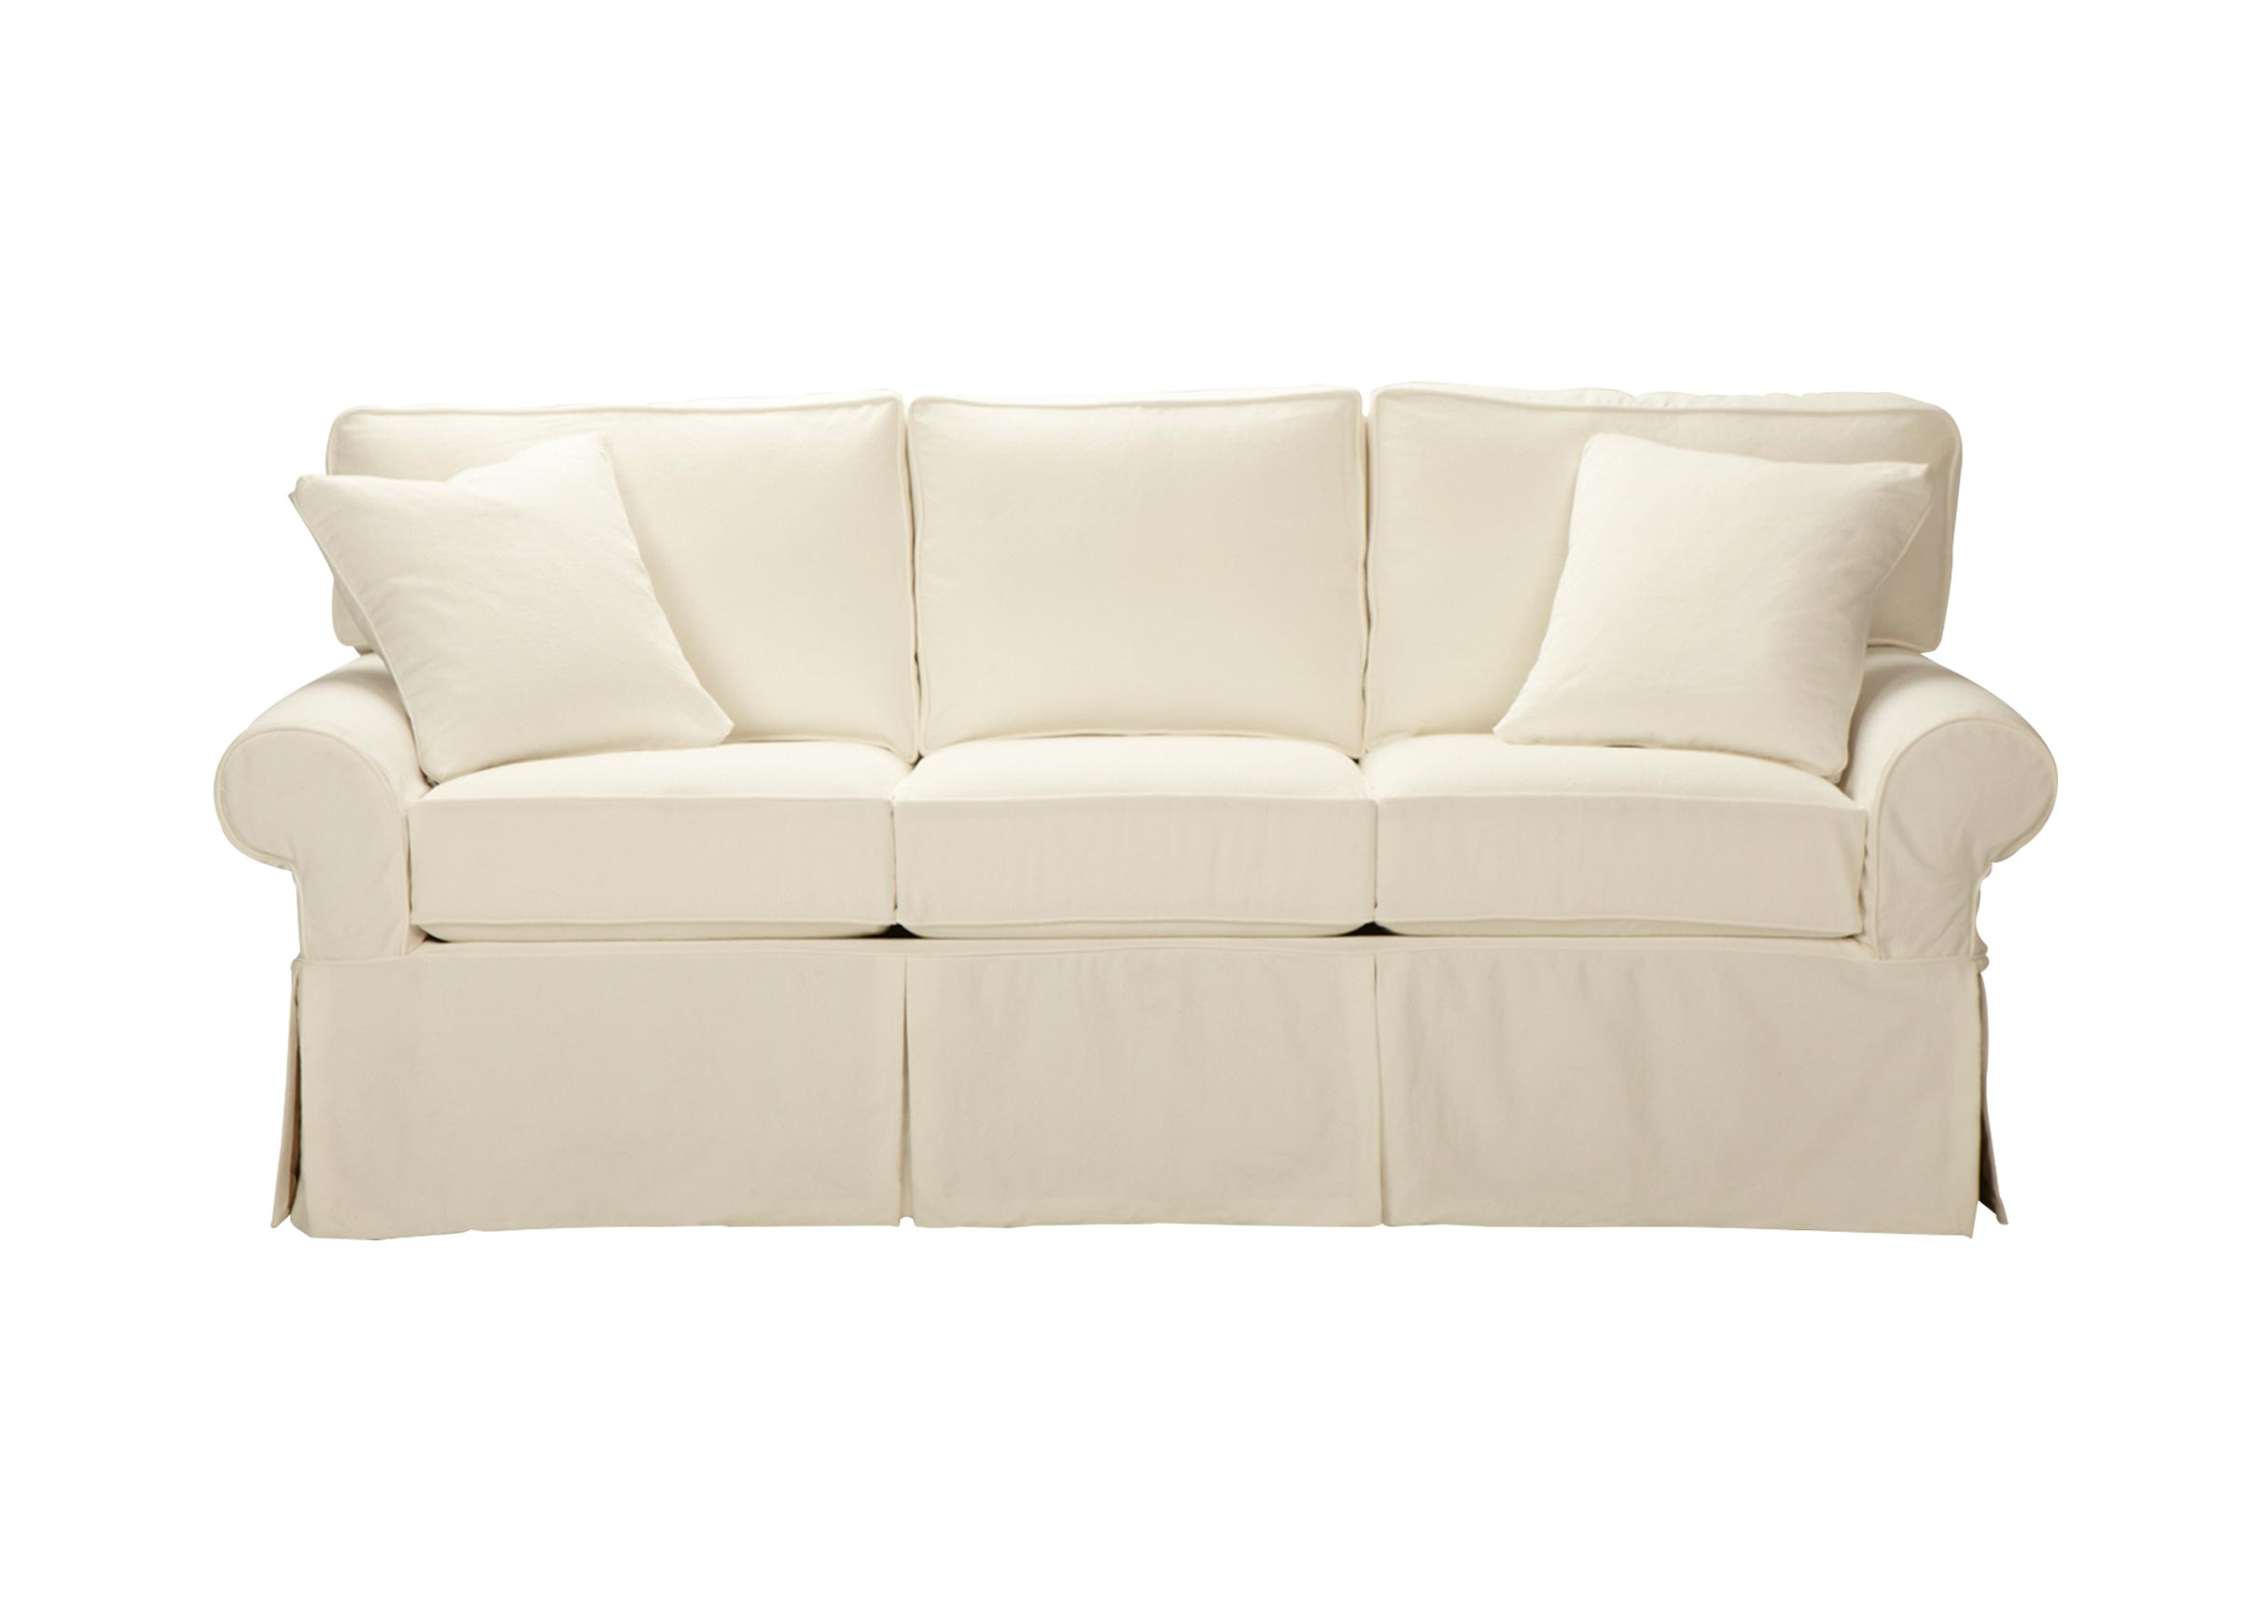 design sectional by products loveseat ashley alenya right with piece charcoal pattern number item signature